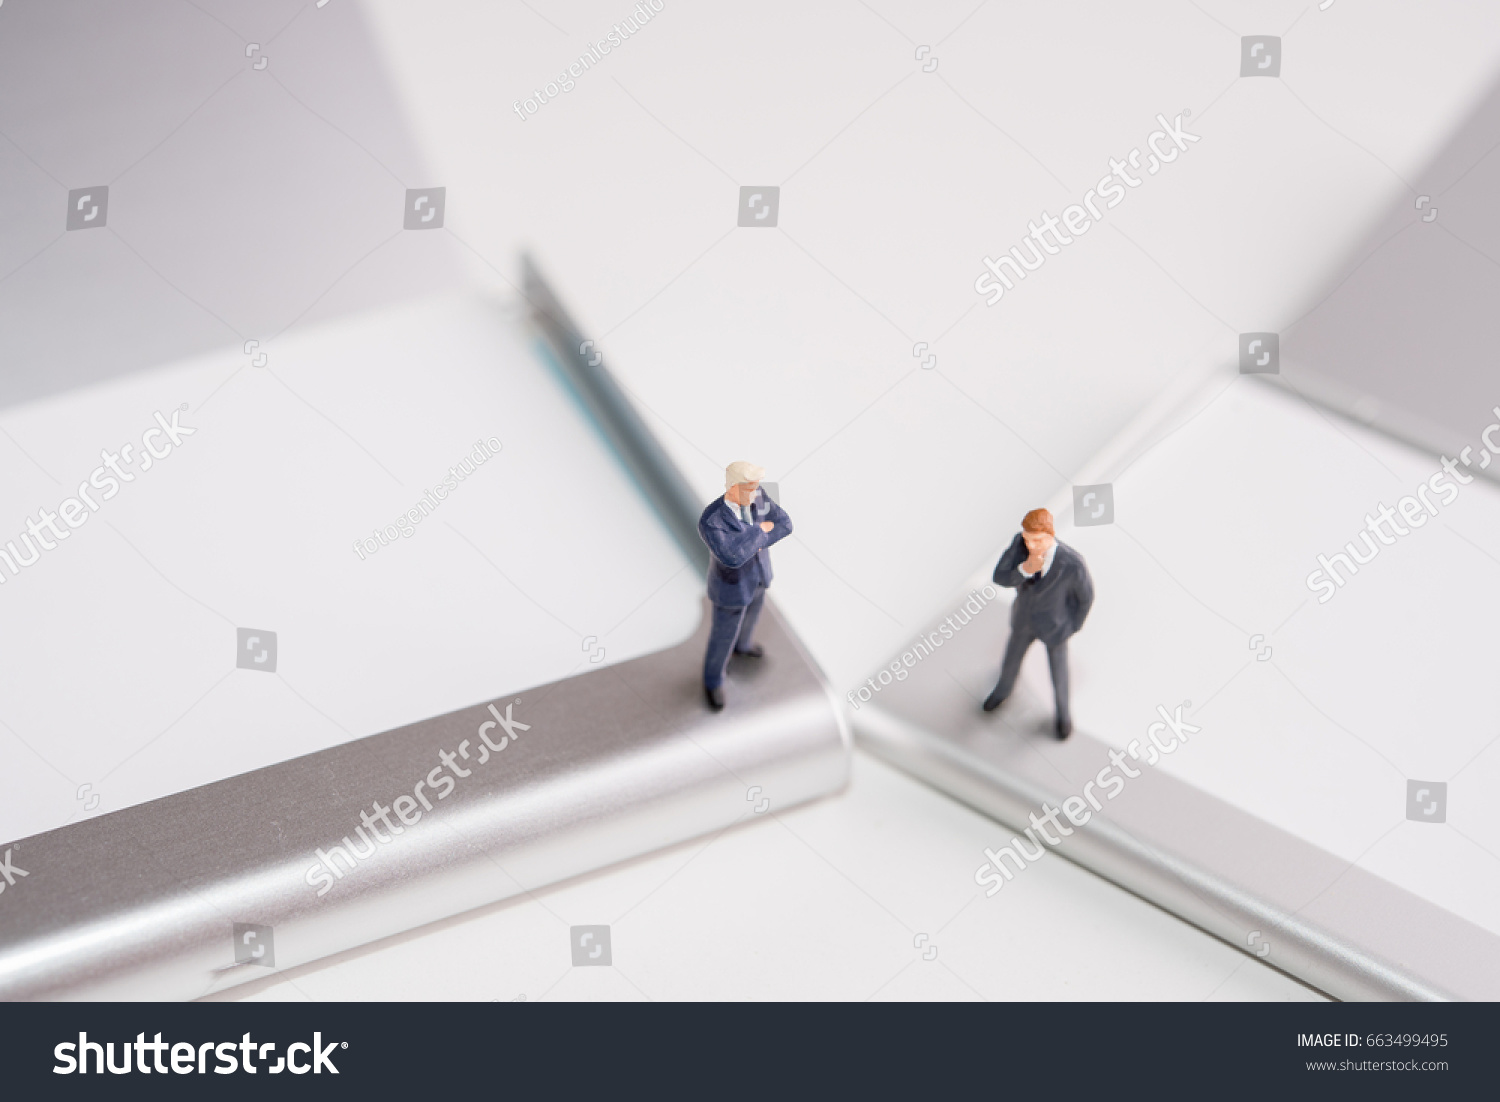 Miniature Figure Business Man Stand On Stock Photo 663499495 ...